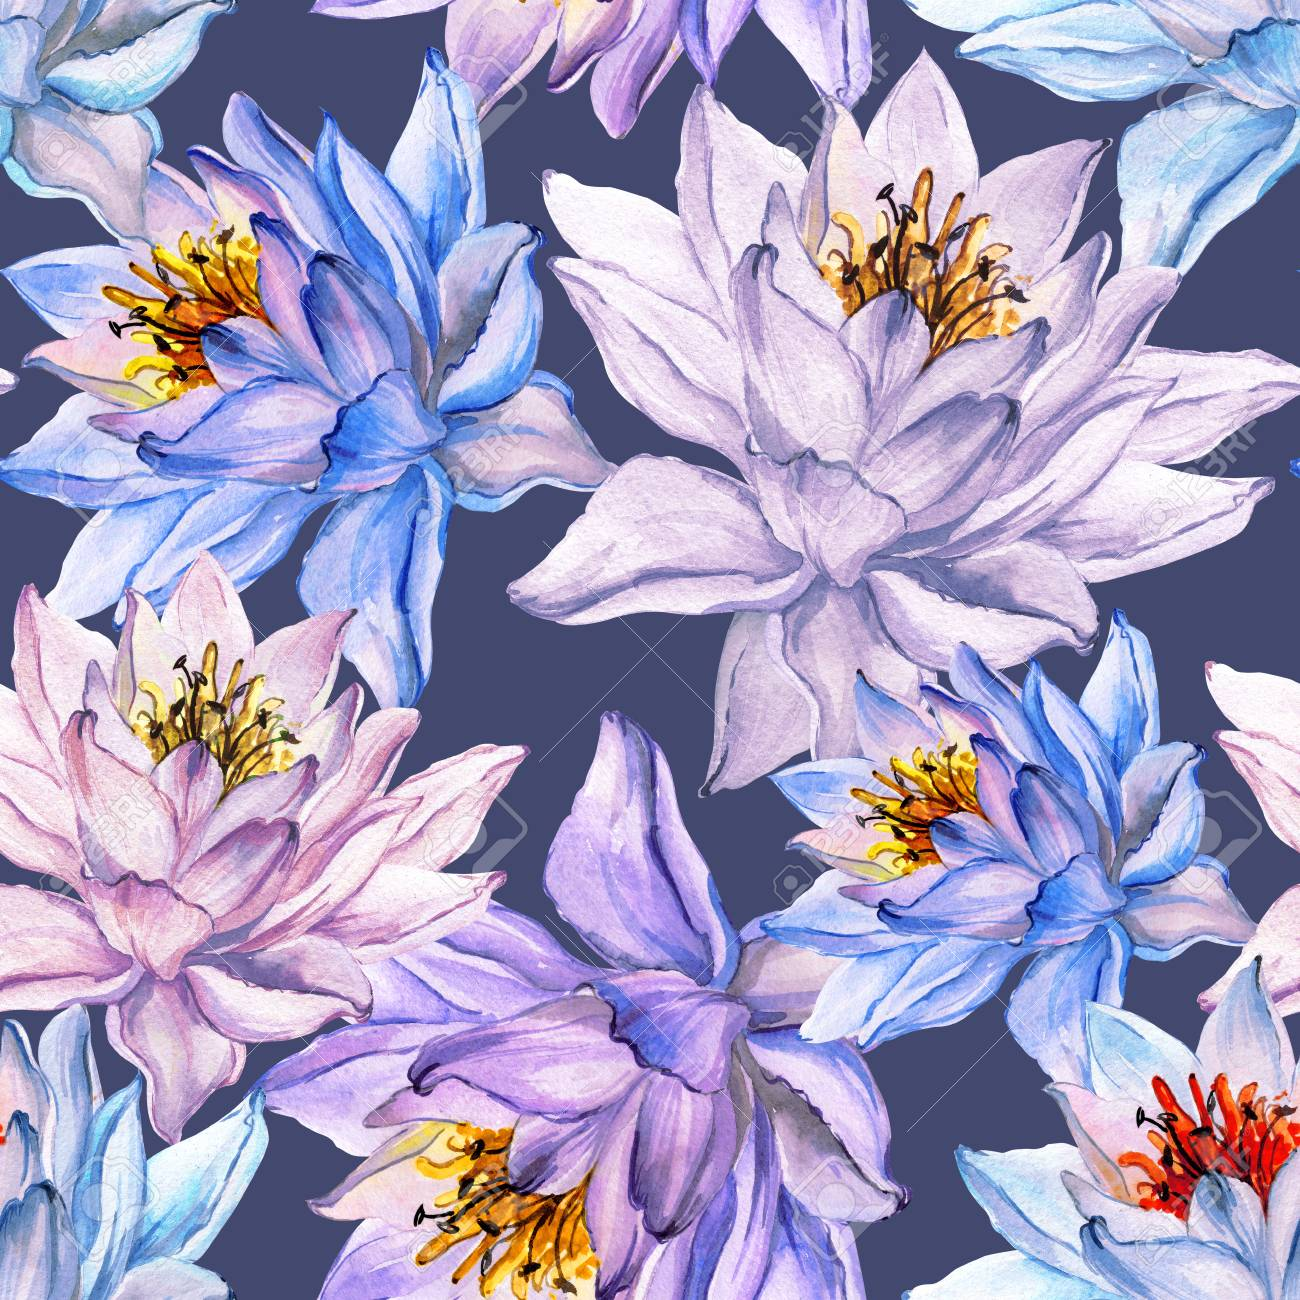 Beautiful floral seamless pattern large colorful lotus flowers beautiful floral seamless pattern large colorful lotus flowers on gray background hand drawn illustration mightylinksfo